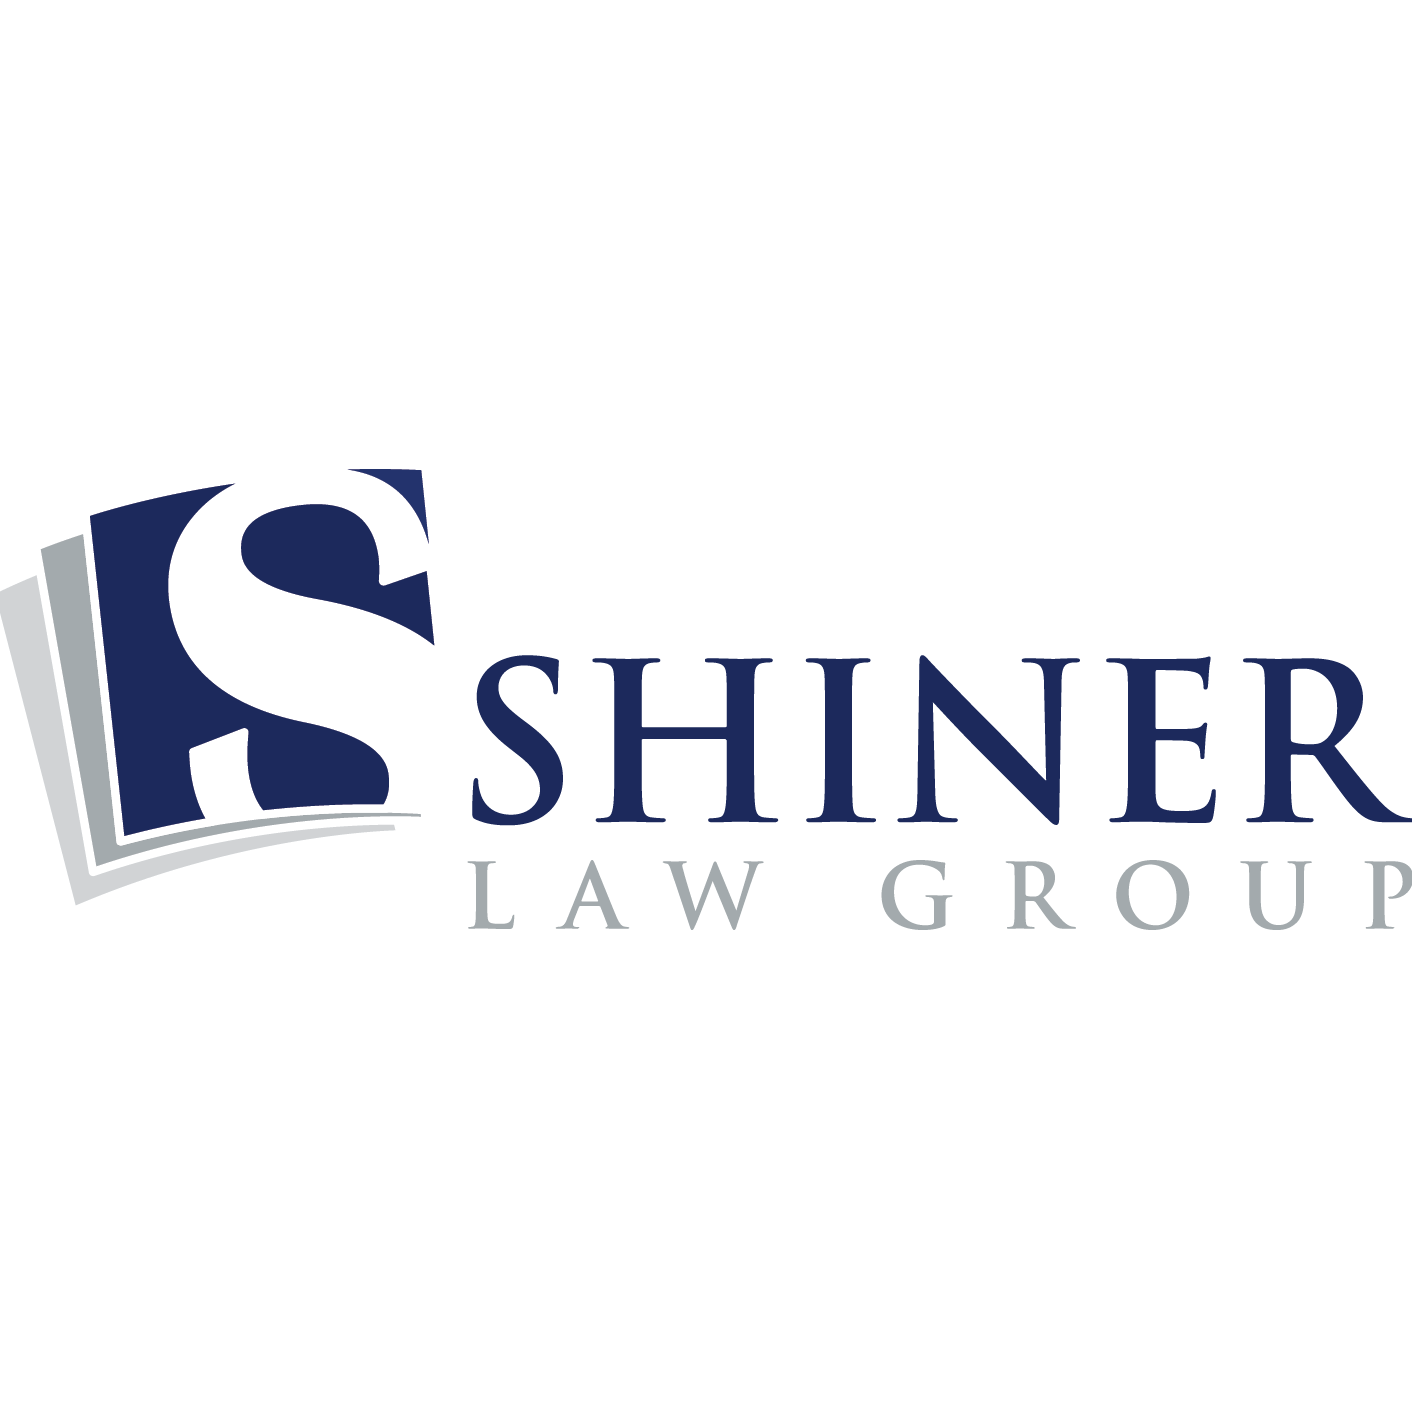 SHINER LAW GROUP - BOCA RATON, FL - Attorneys